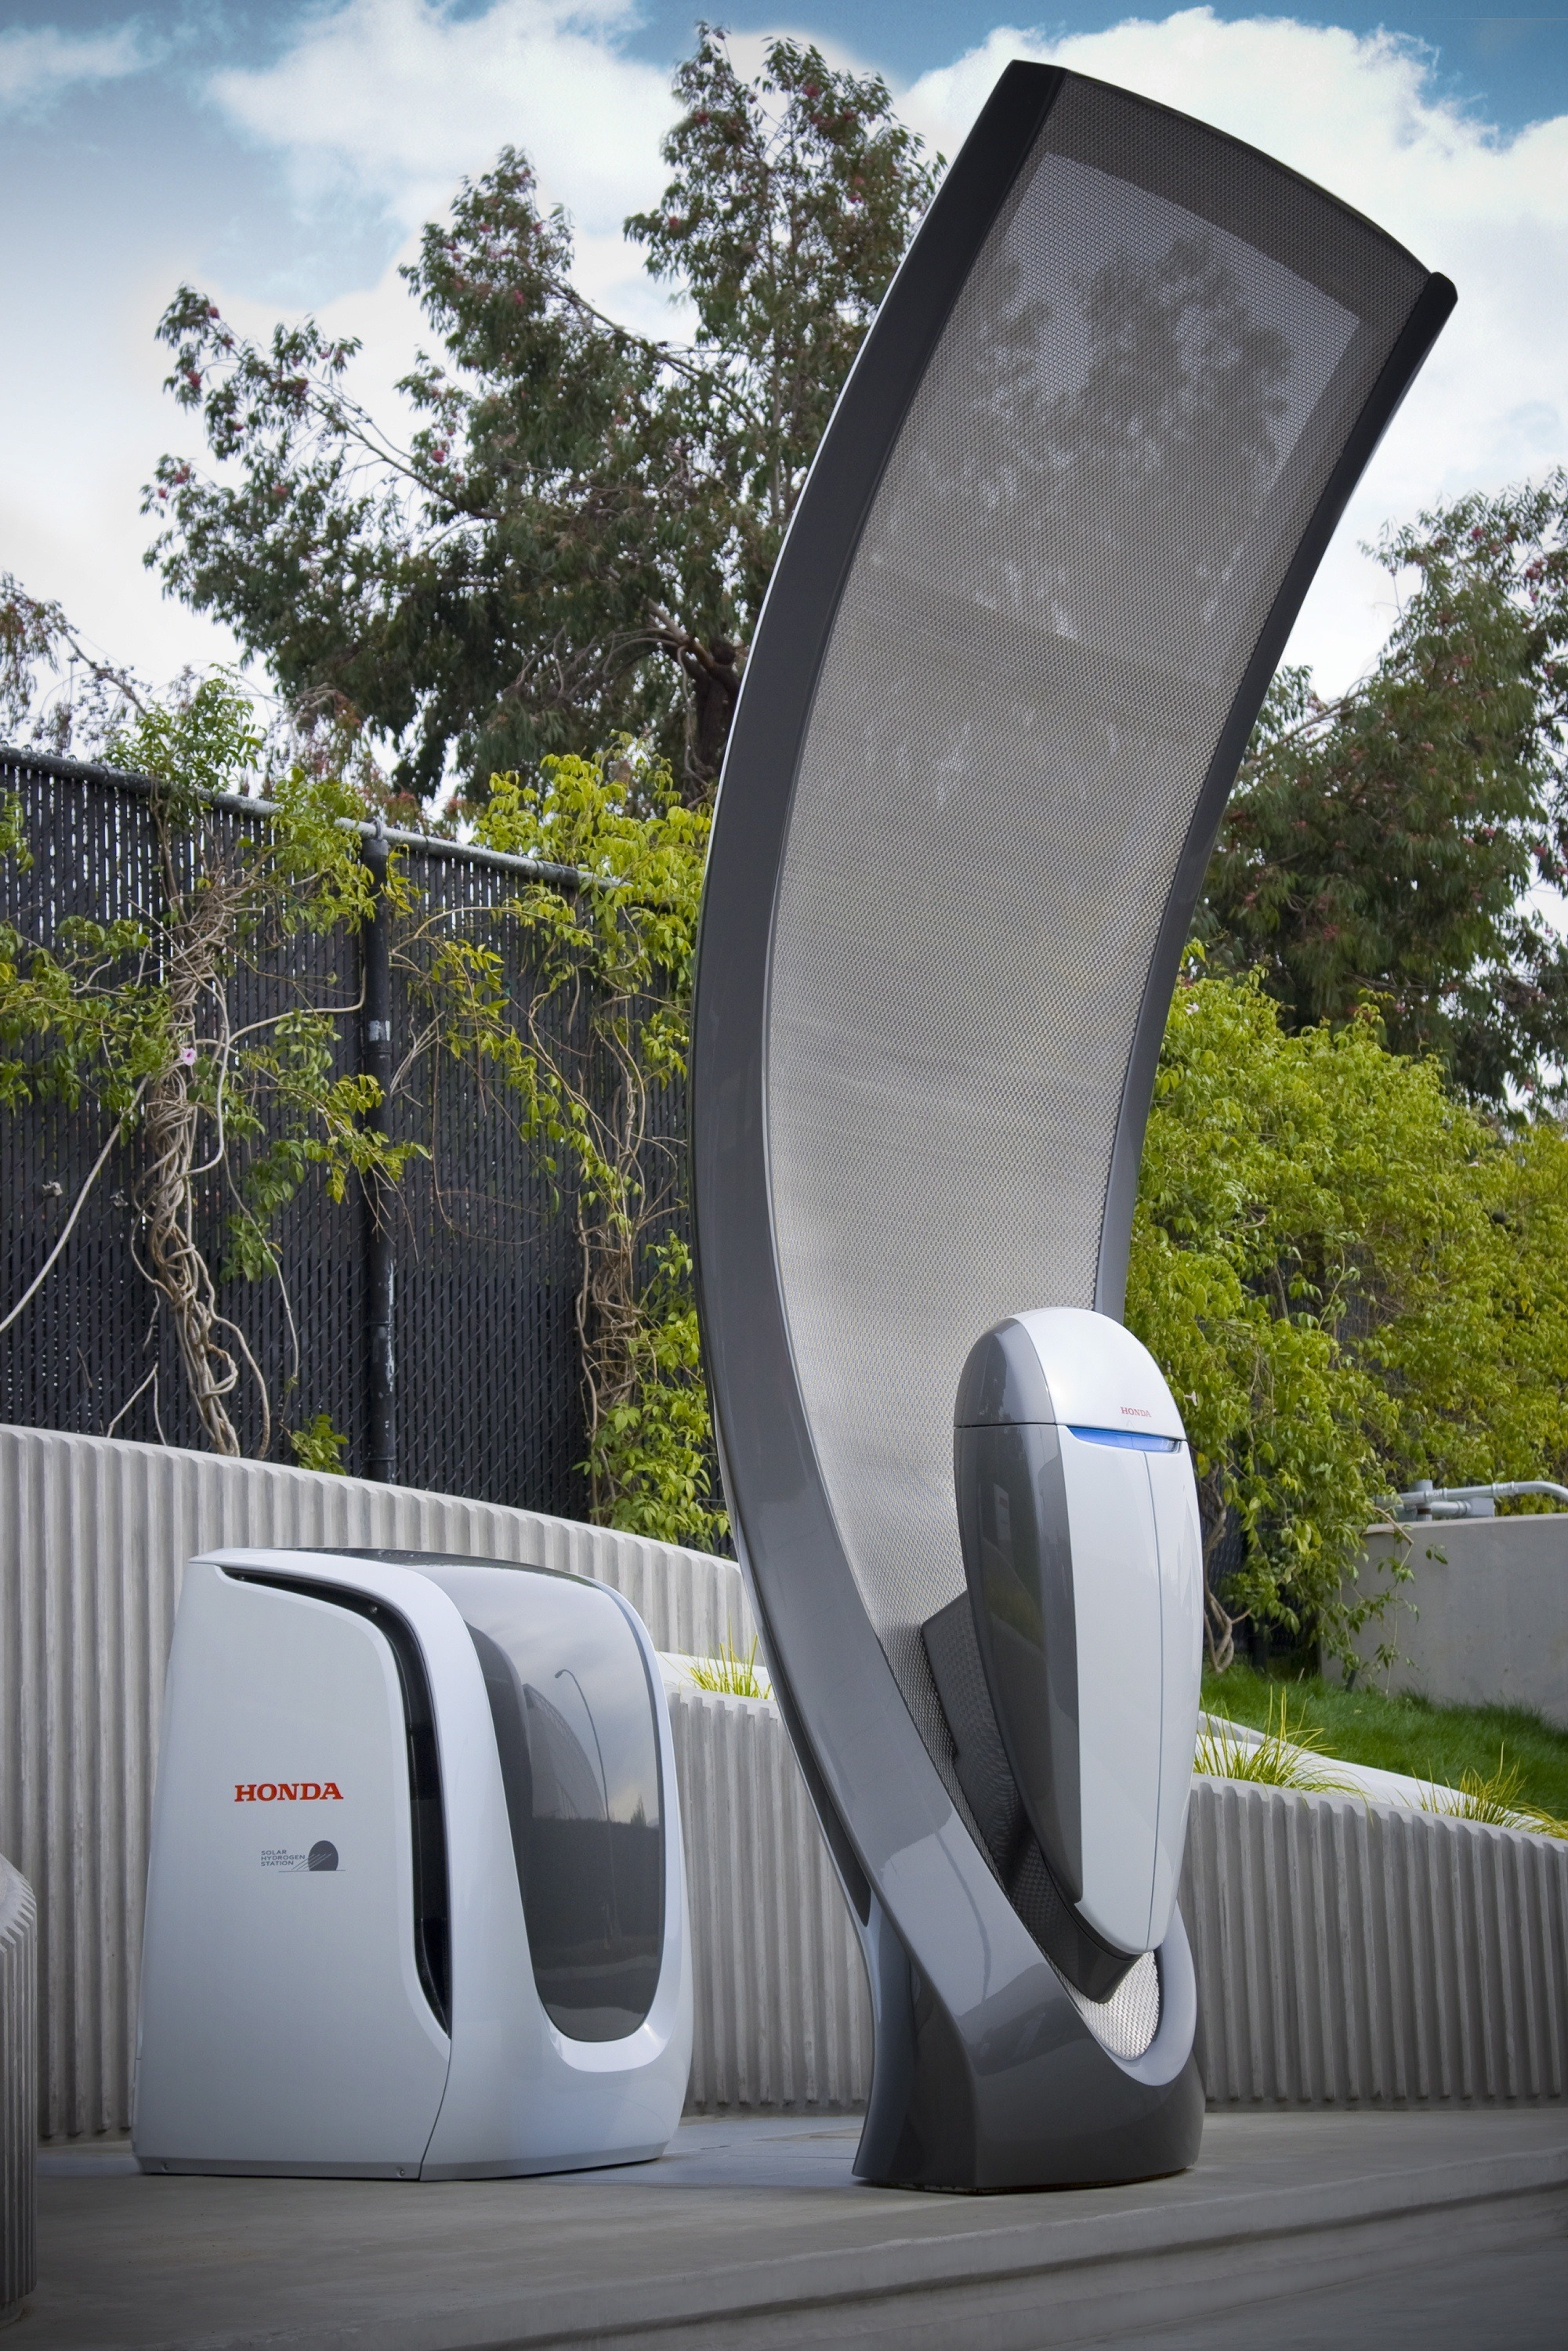 Honda's next generation home solar refueling system can refill a fuel cell electric vehicles overnight.